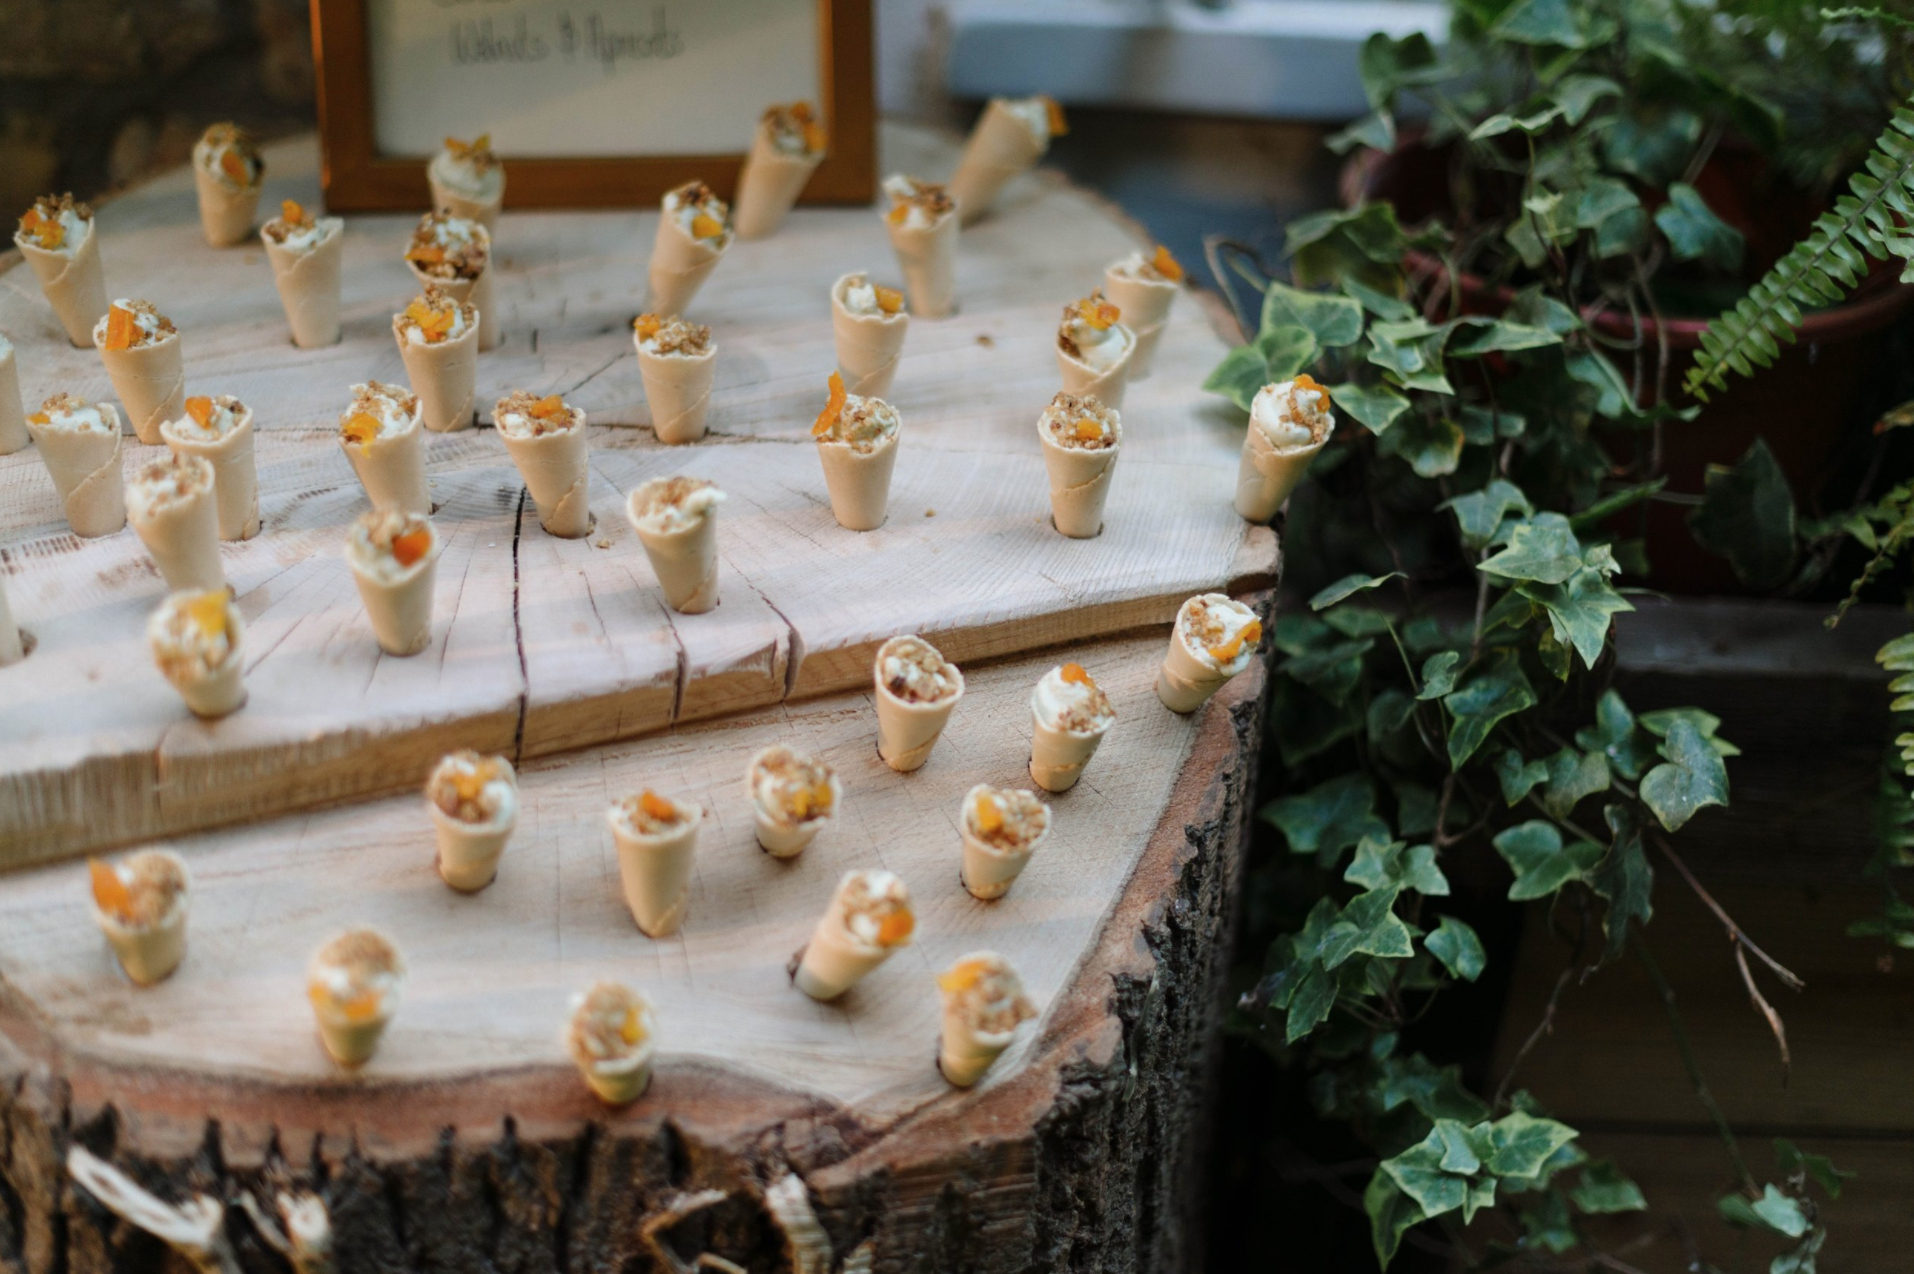 Cone Canapé's from A Banquet at Toad Hall held earlier this year.